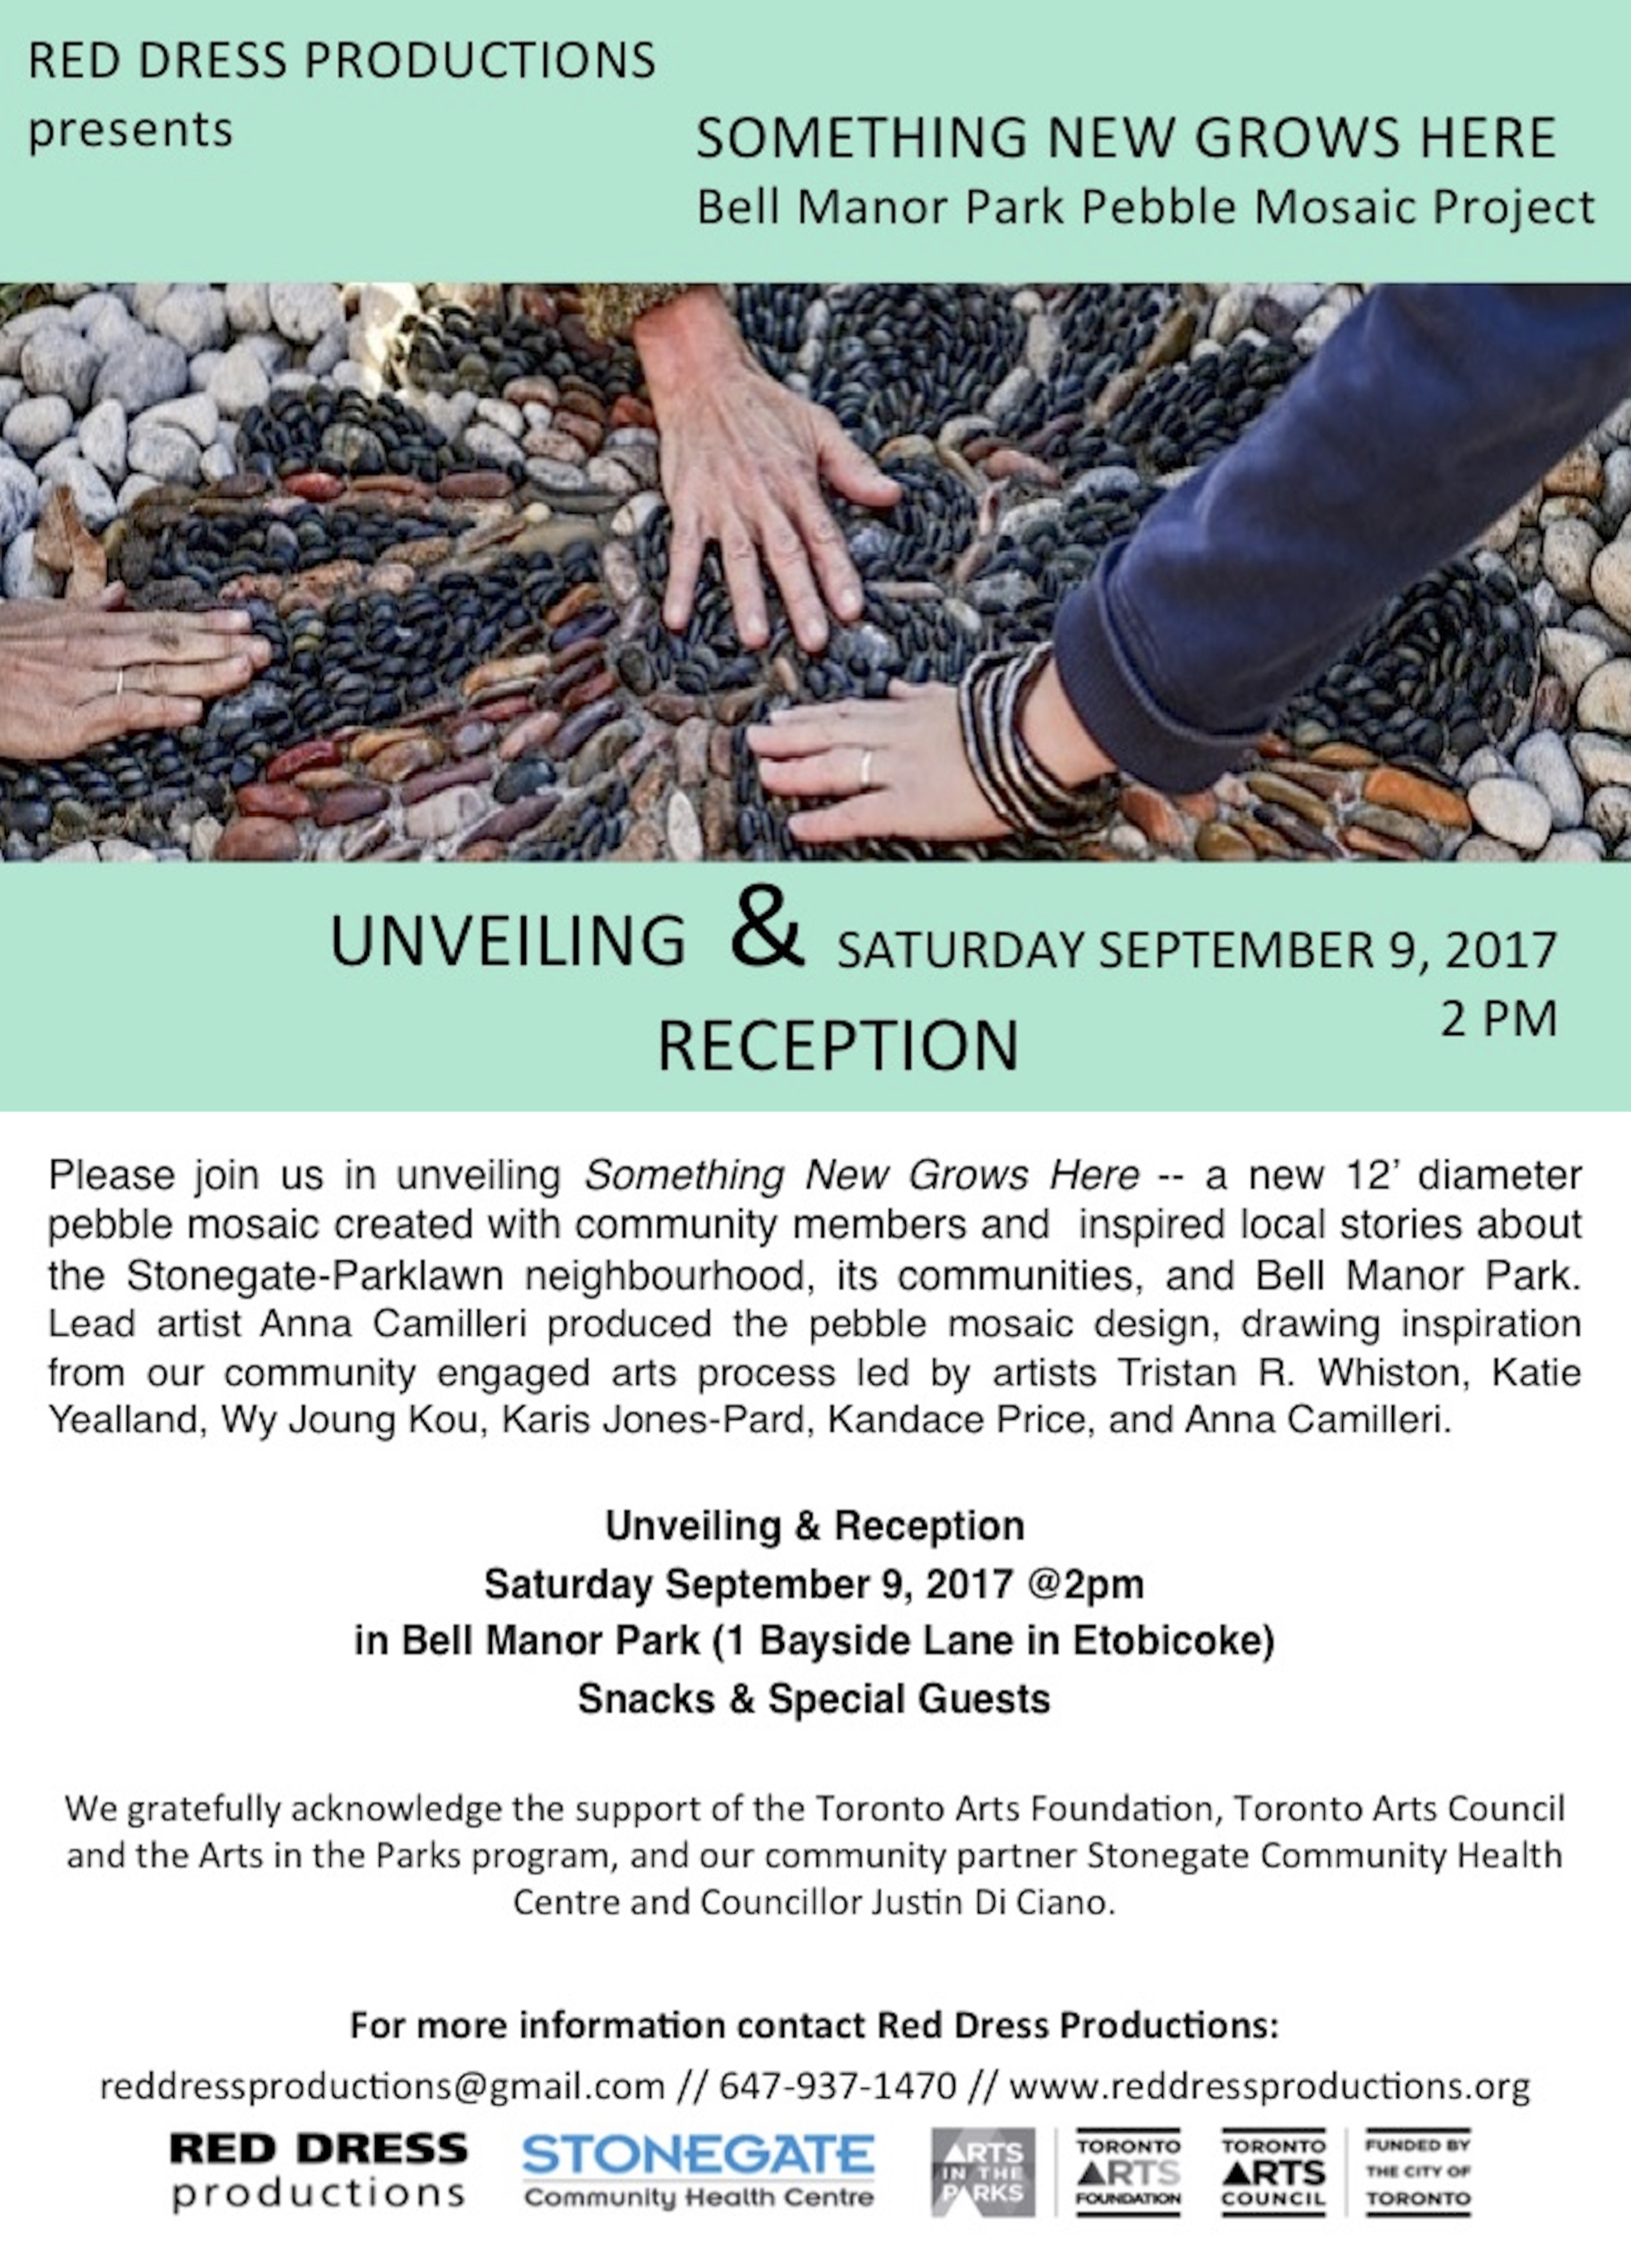 "This is a postcard invitation: The card has an image of three hands placed on a pebble mosaic in the ground. The words ""Red Dress Productions presents Something New Grows Here, The Bell Manor Park Pebble Mosaic Project"" are along the top of the image. At the bottom of the image are the words: Unveiling and Reception, Saturday September 9, 2017 at 2 pm"